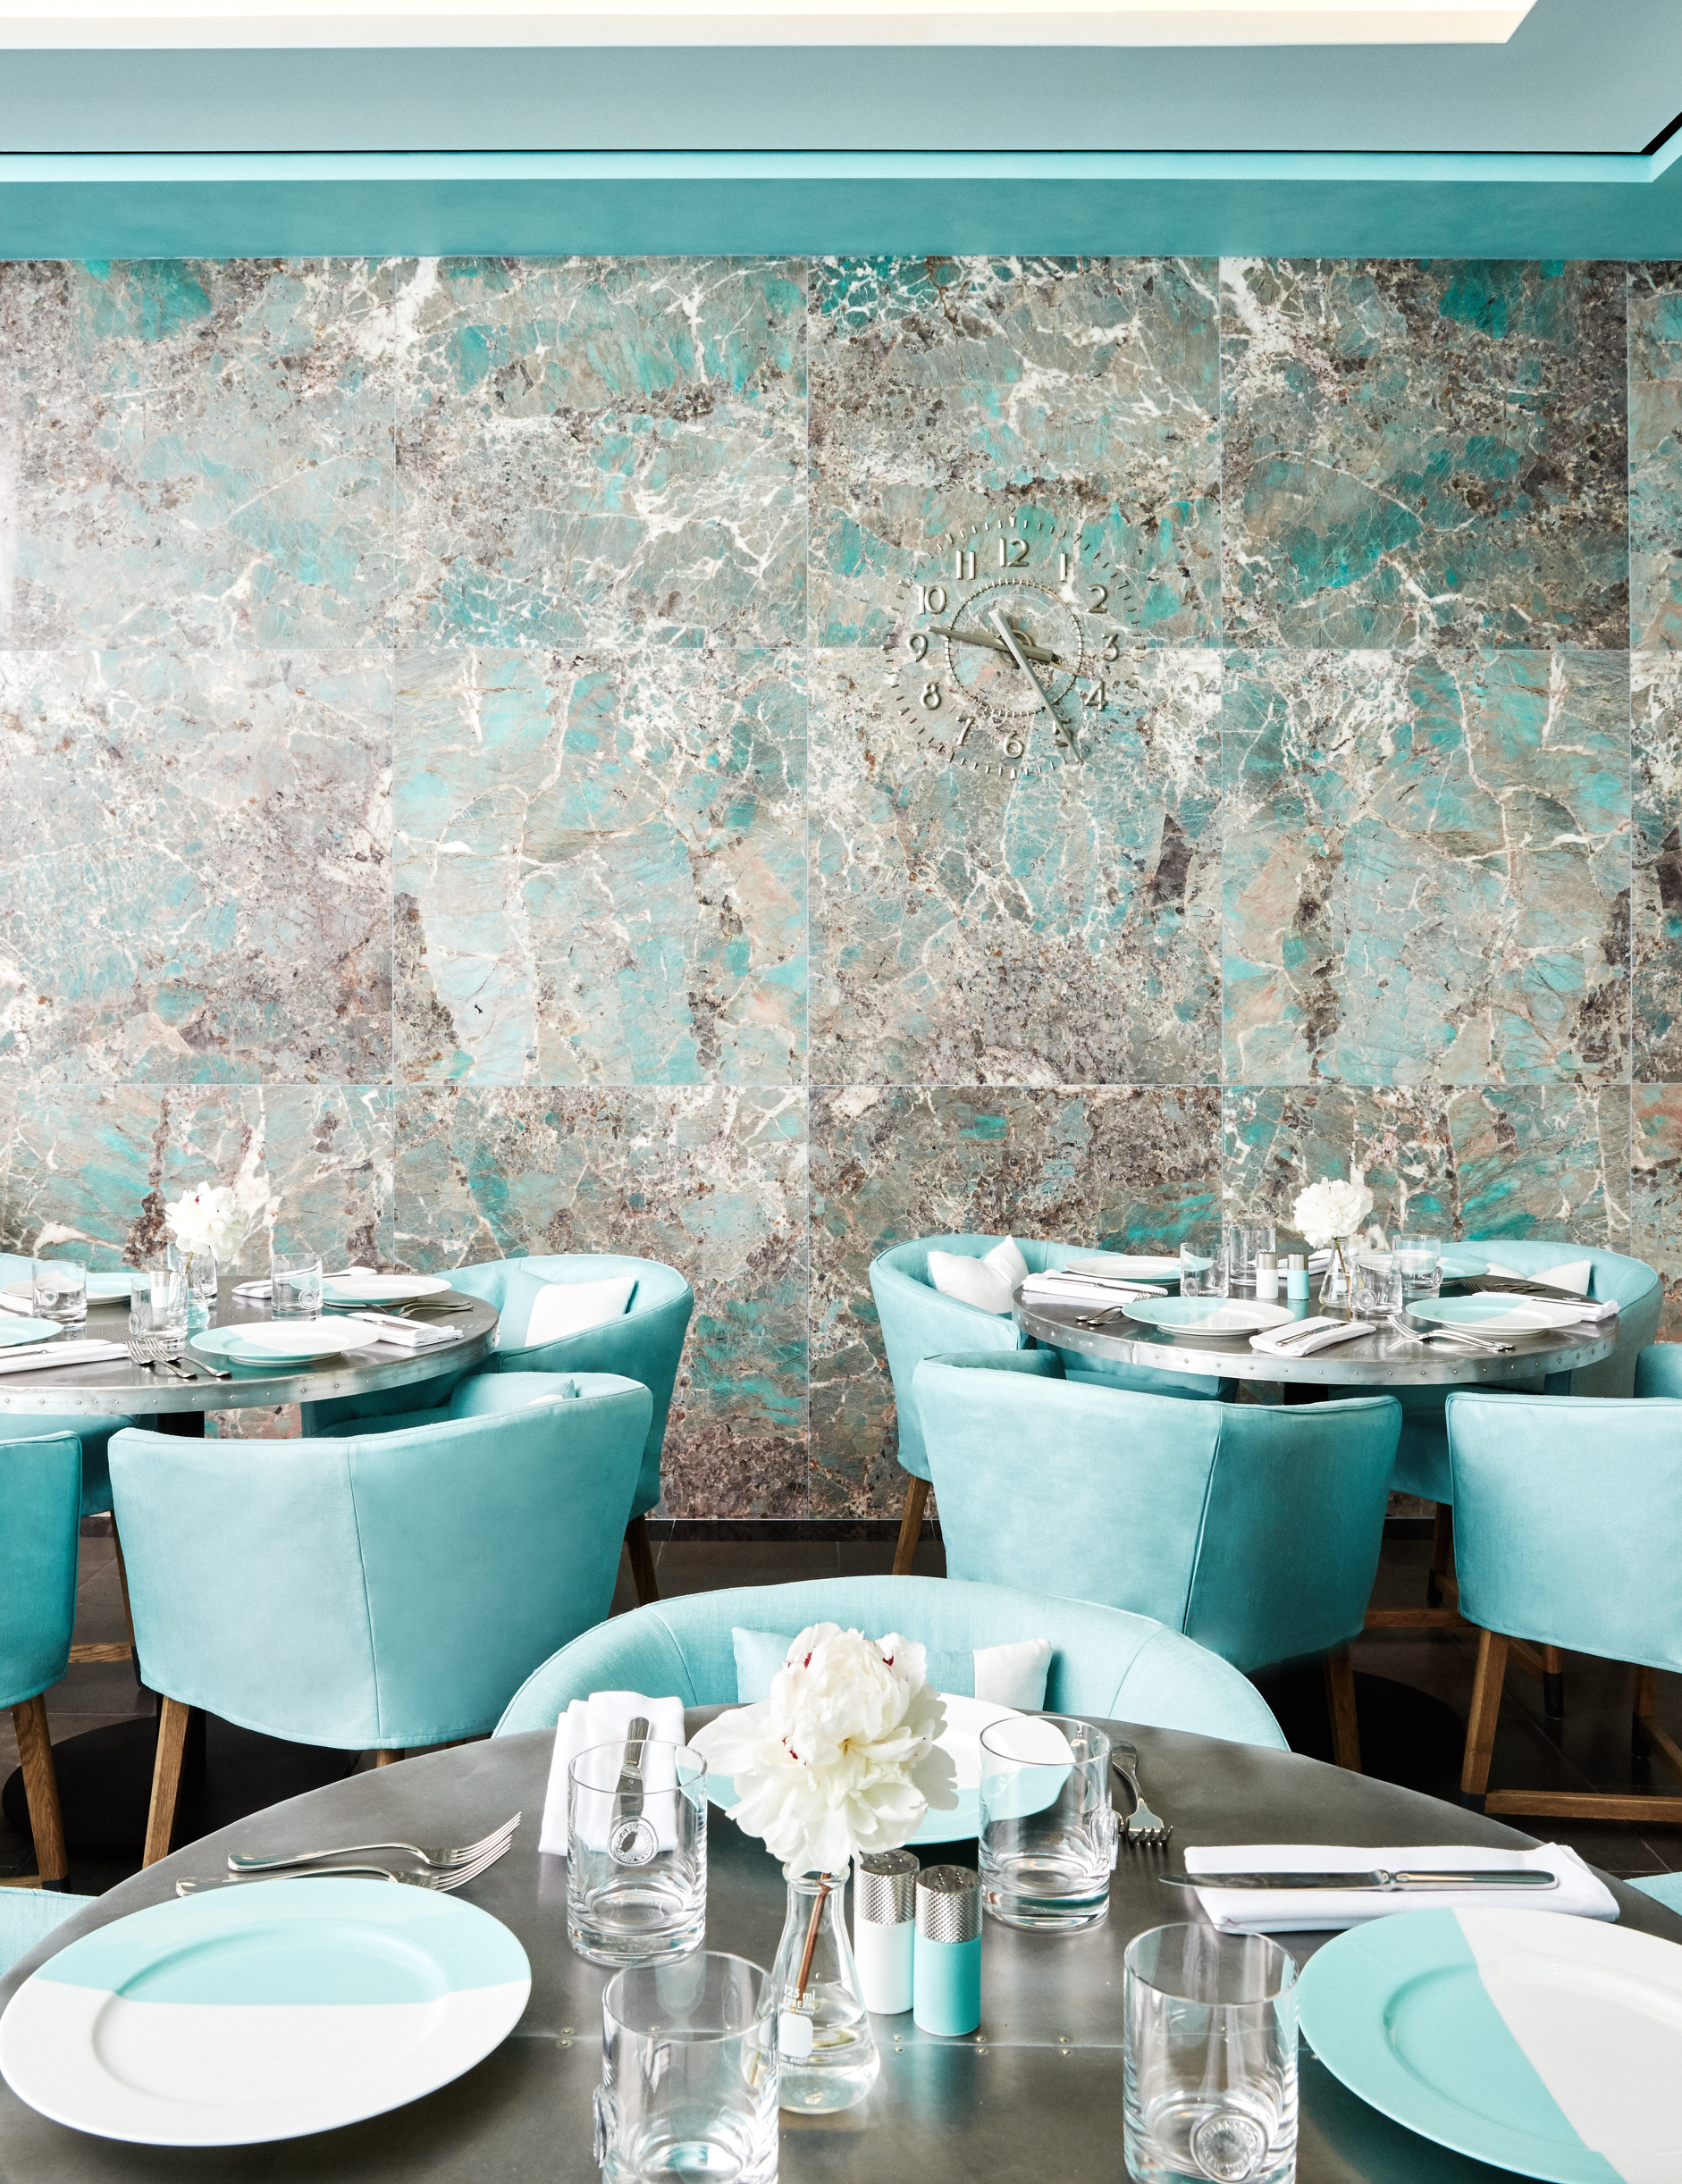 Tiffany's New Cafe Commanded Two-Hour Waits on Friday